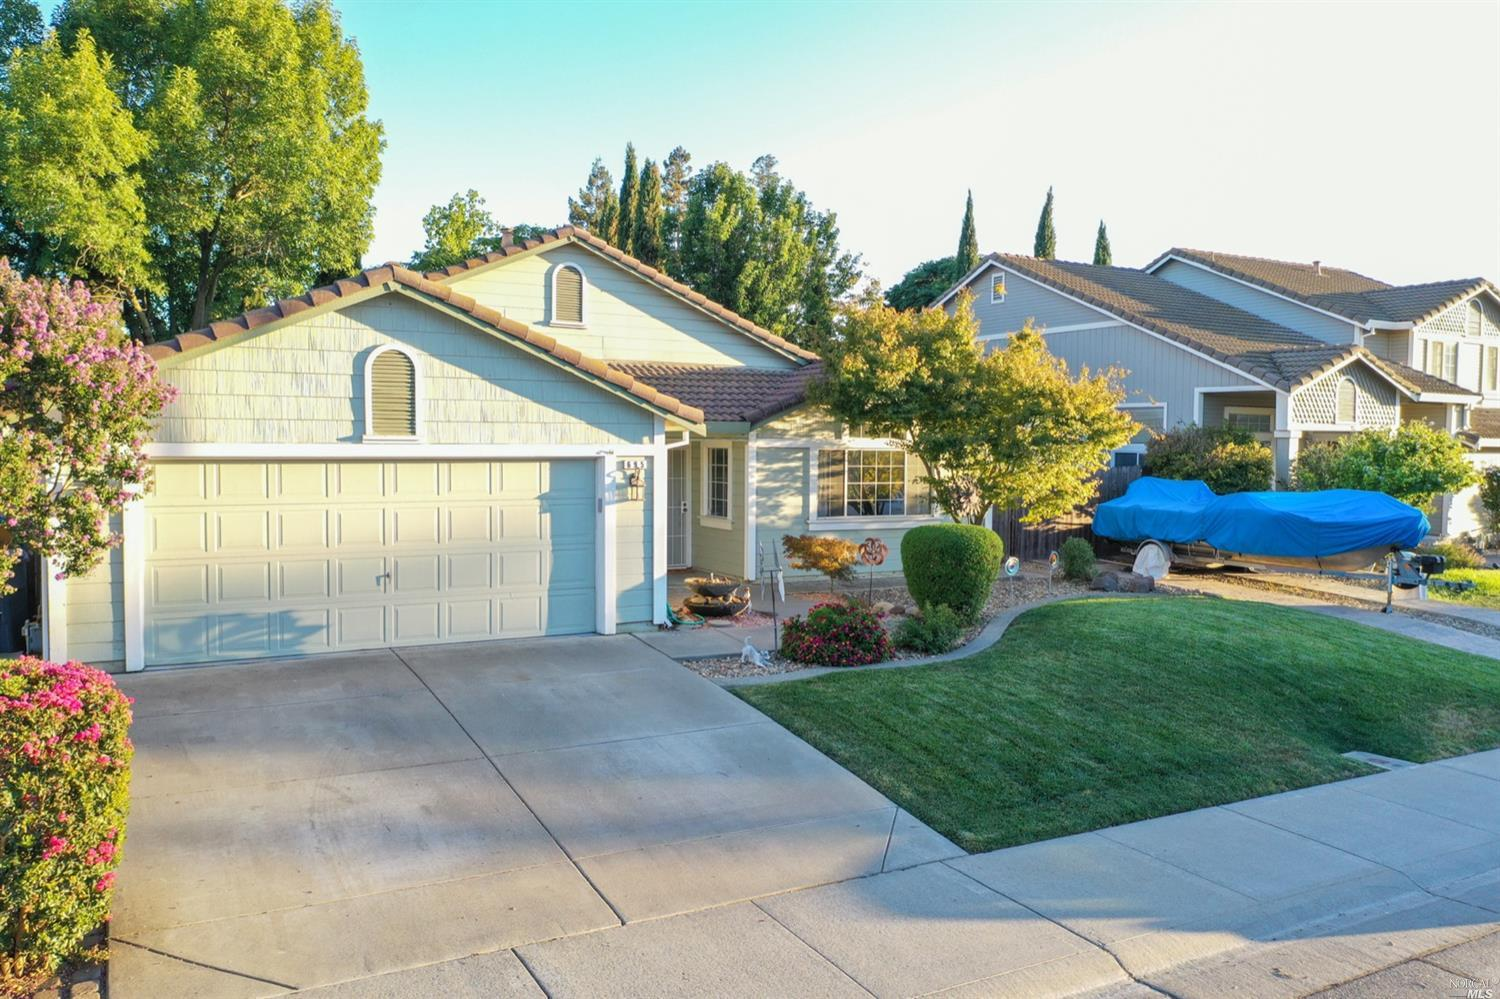 695 Fountain Wy, Dixon, CA, 95620